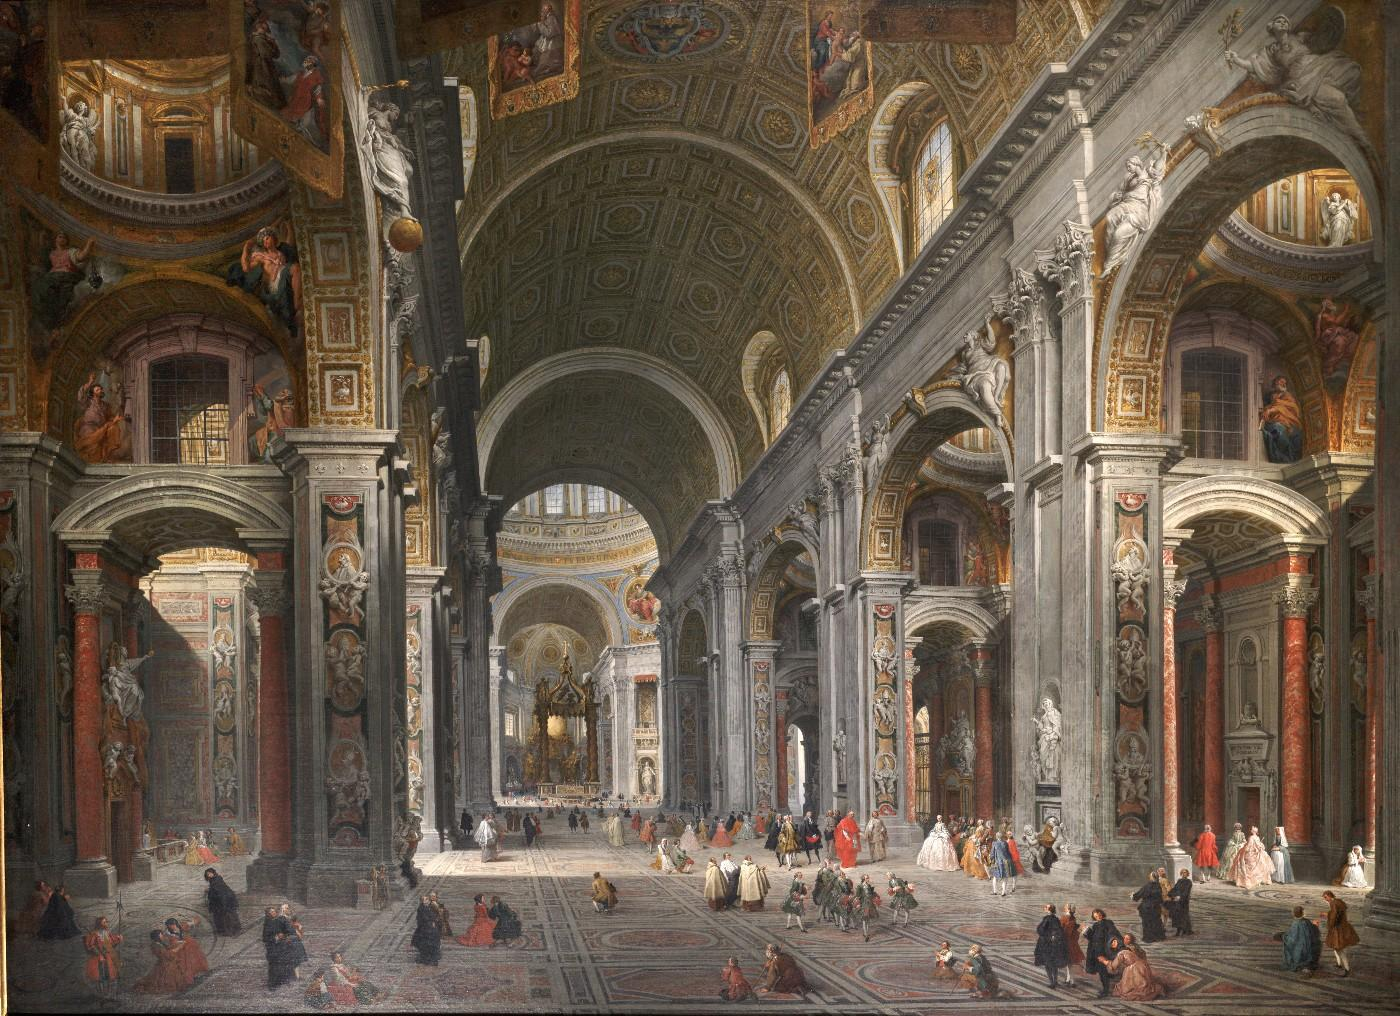 The Interior of St. Peter's during the Visit of the Duc de Choiseul, 1756–57. Giovanni Paolo Panini